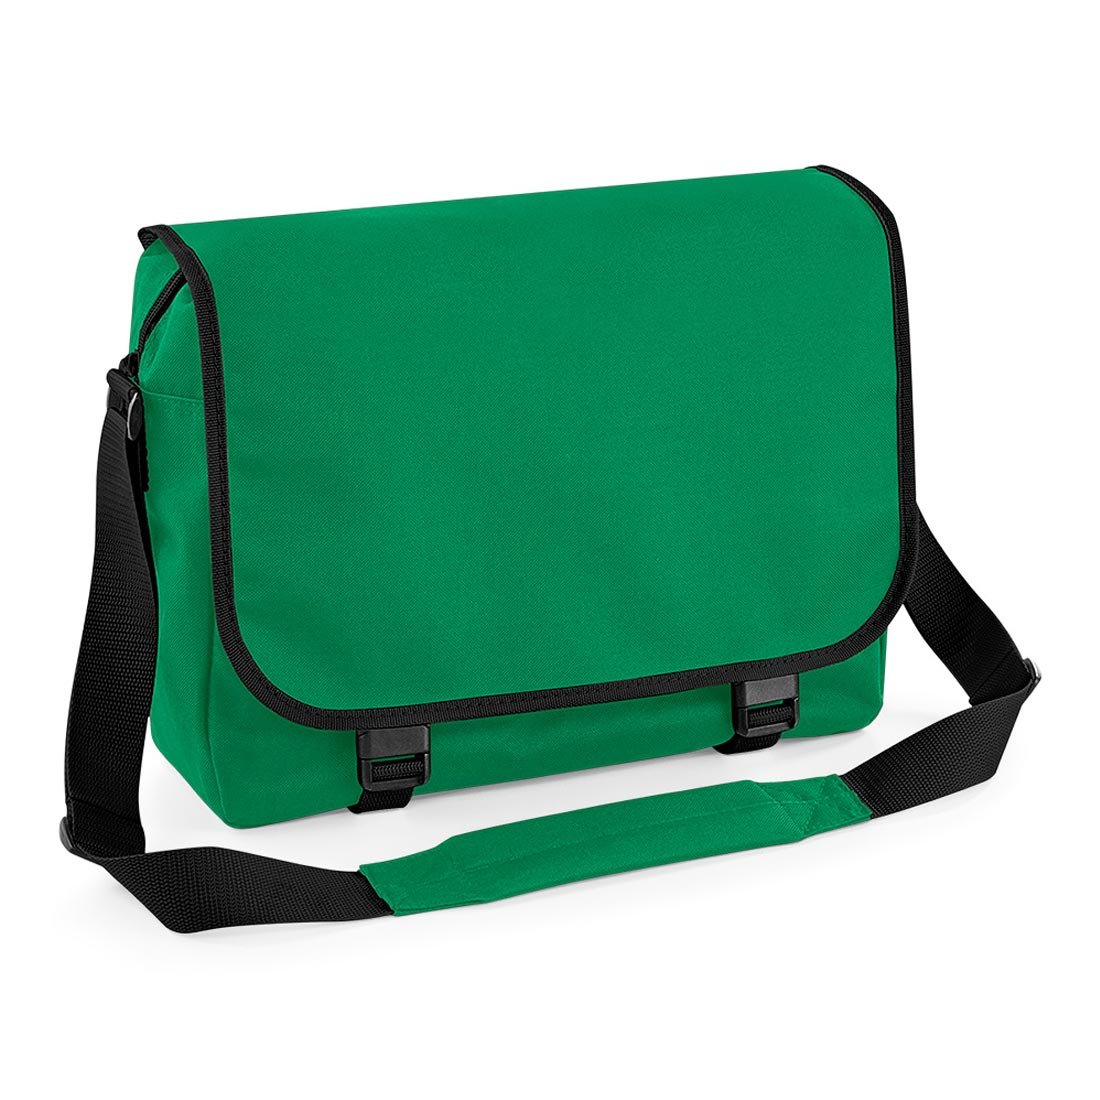 BAGBASE MESSENGER BAG IN 12 GREAT COLOURS BAGBASE MESSENGER BAG (BLACK) penship 0P-4ACK-A9GS